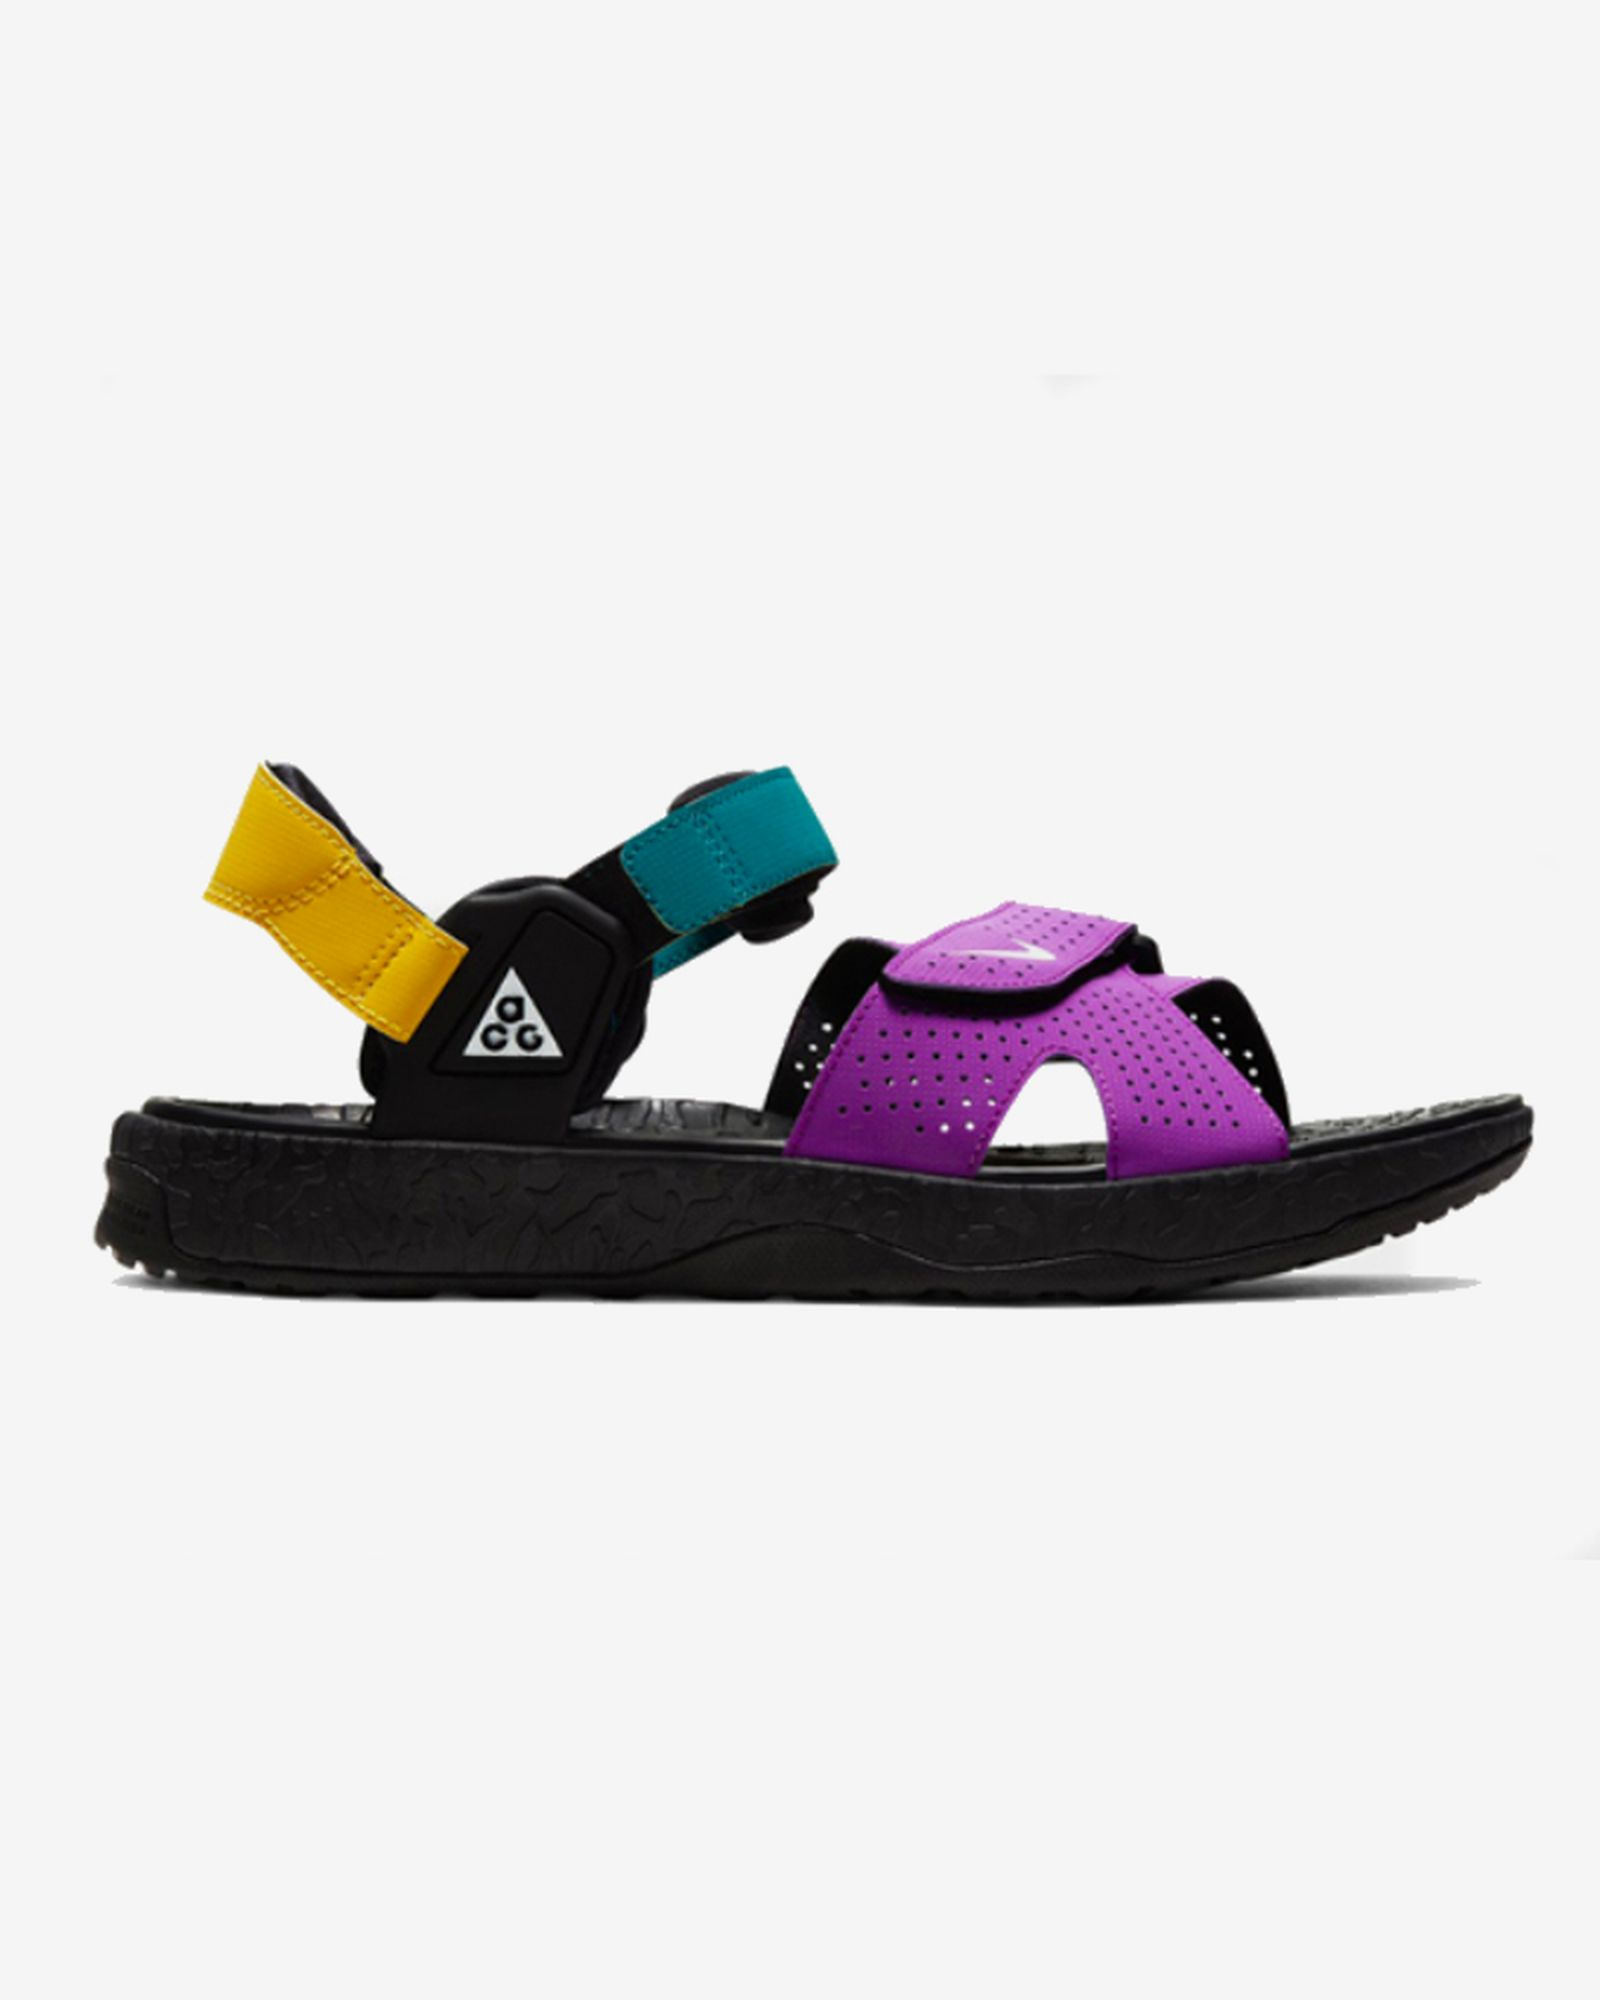 dad-sandals-roundtable-shopping-guide-13